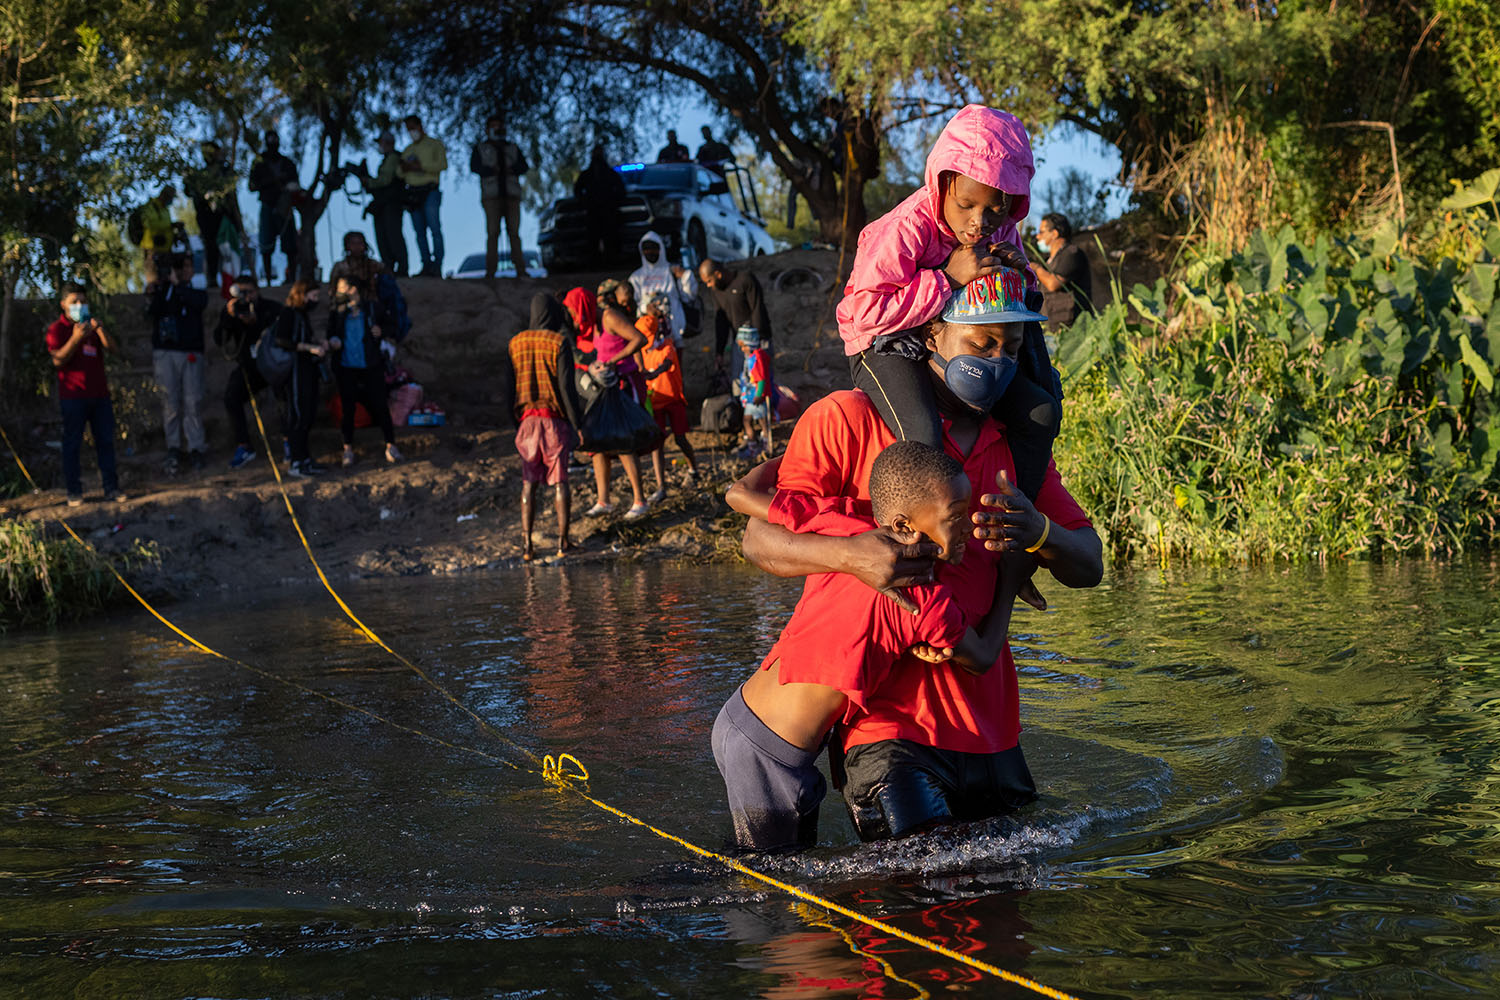 A Haitian migrant carries his children across the Rio Grande to Del Rio, Texas, from Ciudad Acuna, Mexico, on Sept. 23. John Moore/Getty Images